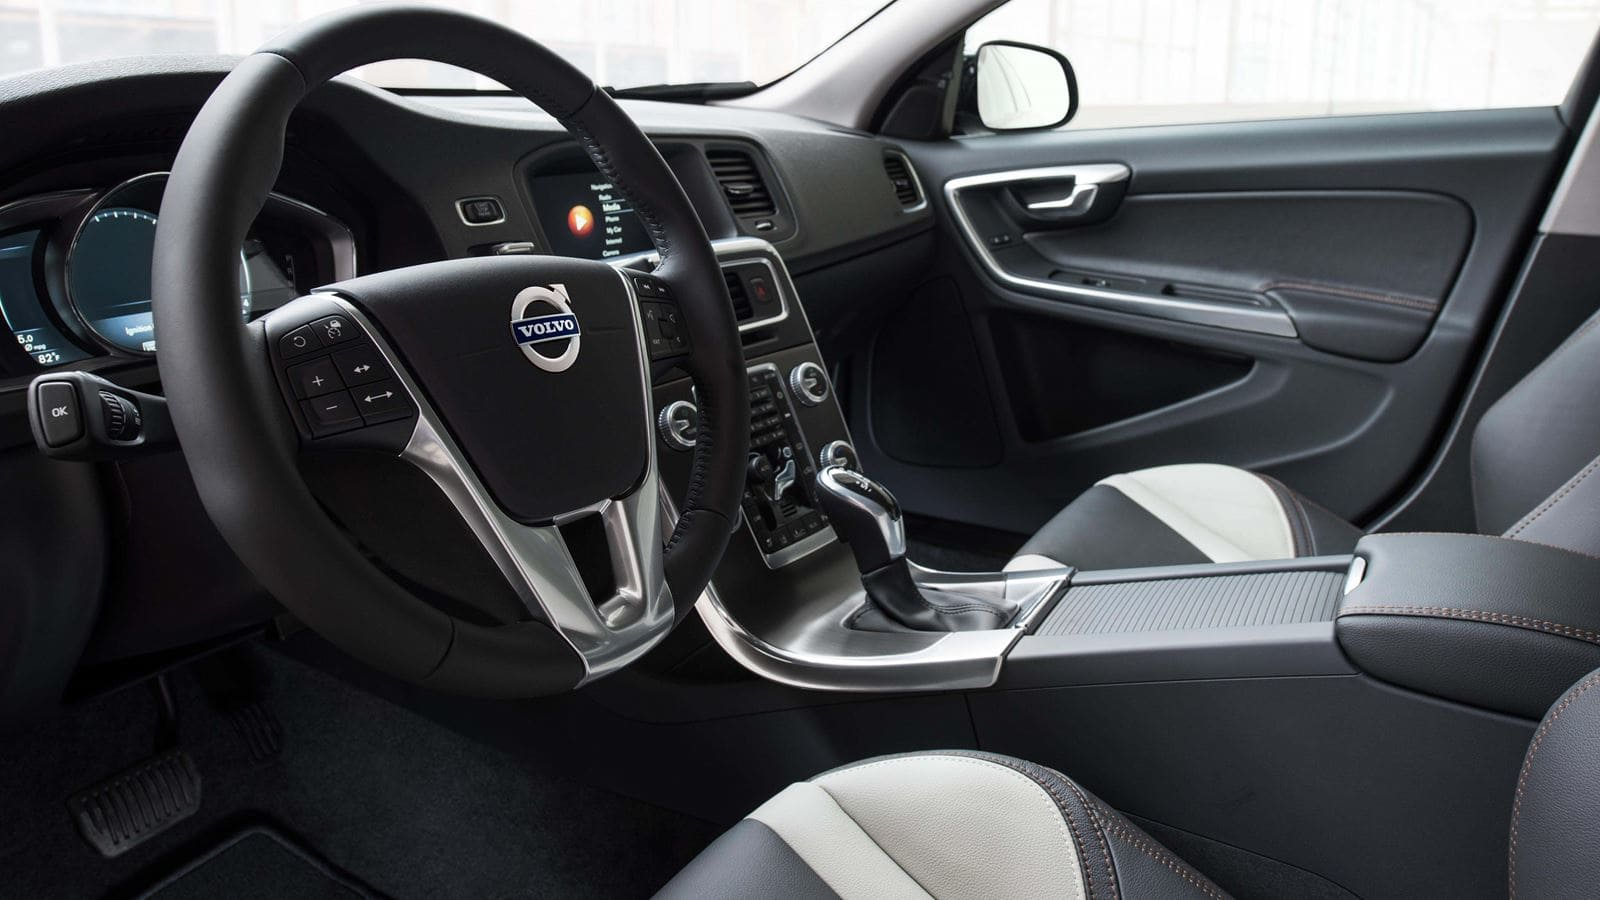 volvo-s60-crosscountry-interior-driver-view-v1